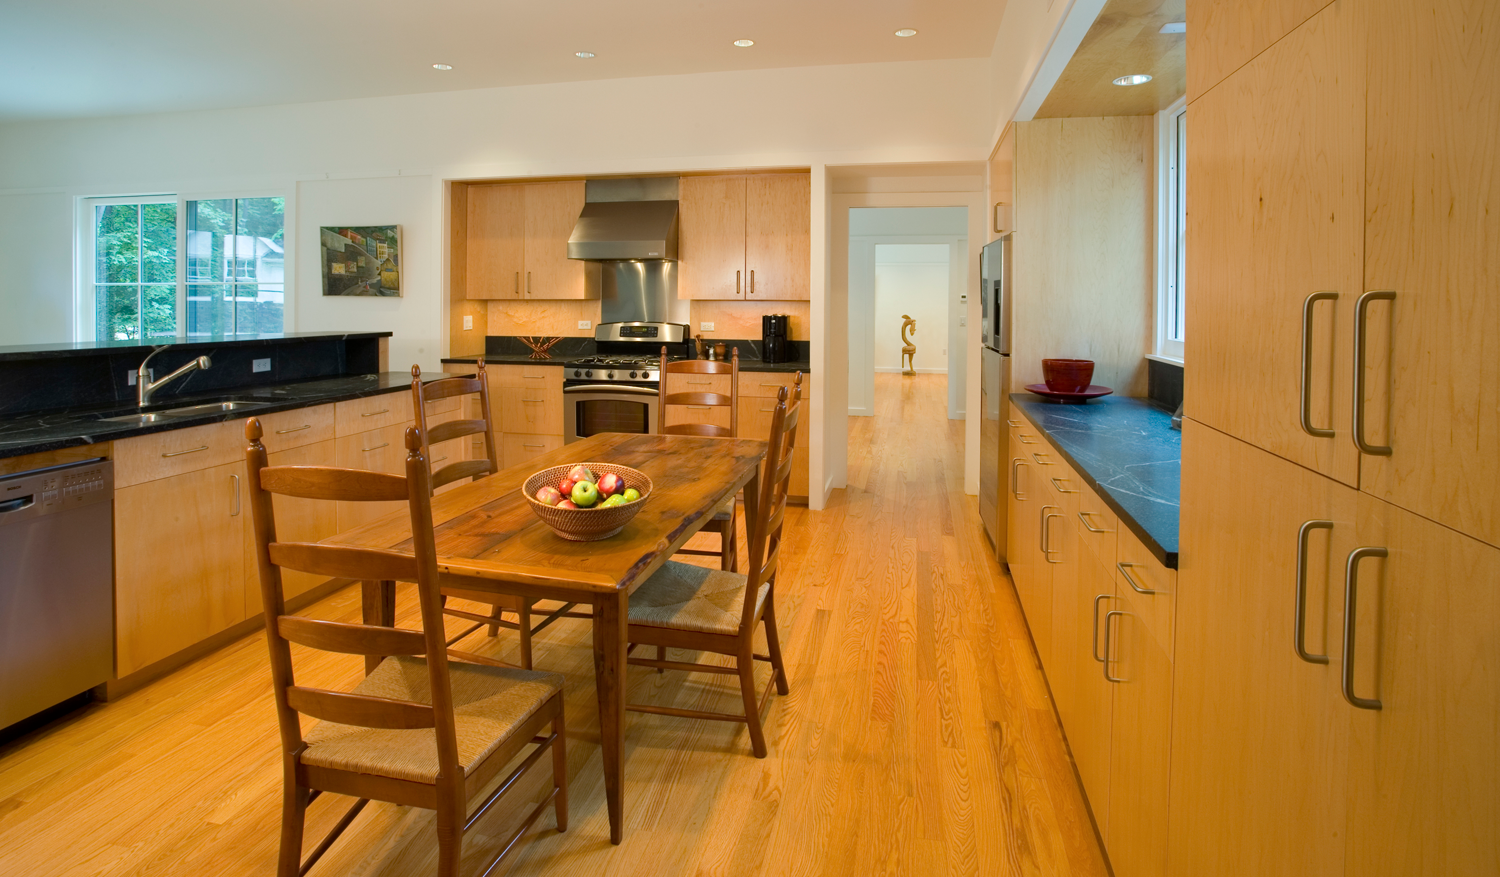 The island, which contains the sink and dishwasher, separates the kitchen from the living room, leaving ample room for the table.